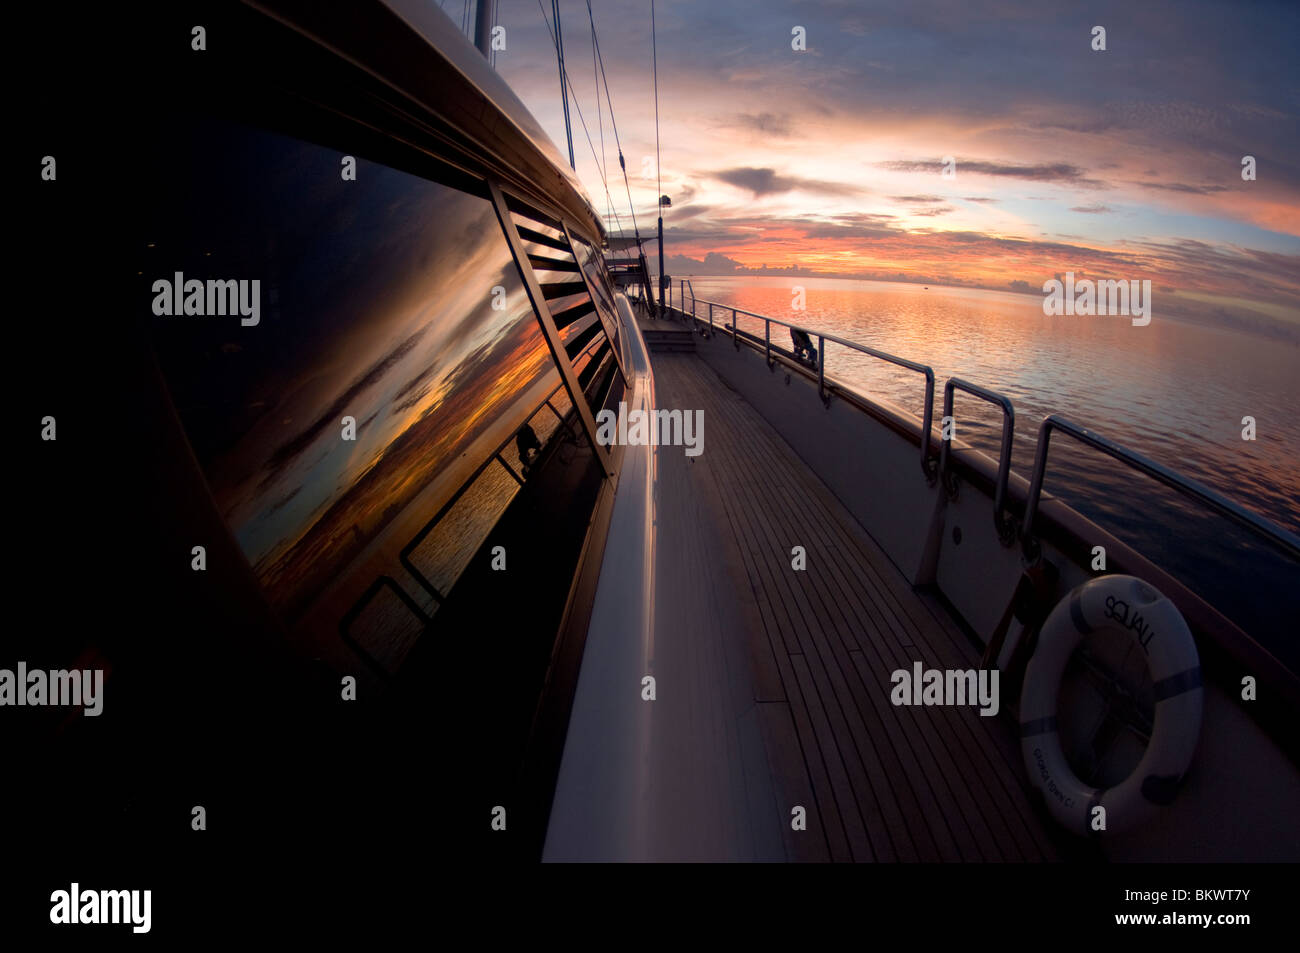 Sunset over the yacht, SY Squall, Layang Layang, Sabah, Malaysia, Borneo - Stock Image